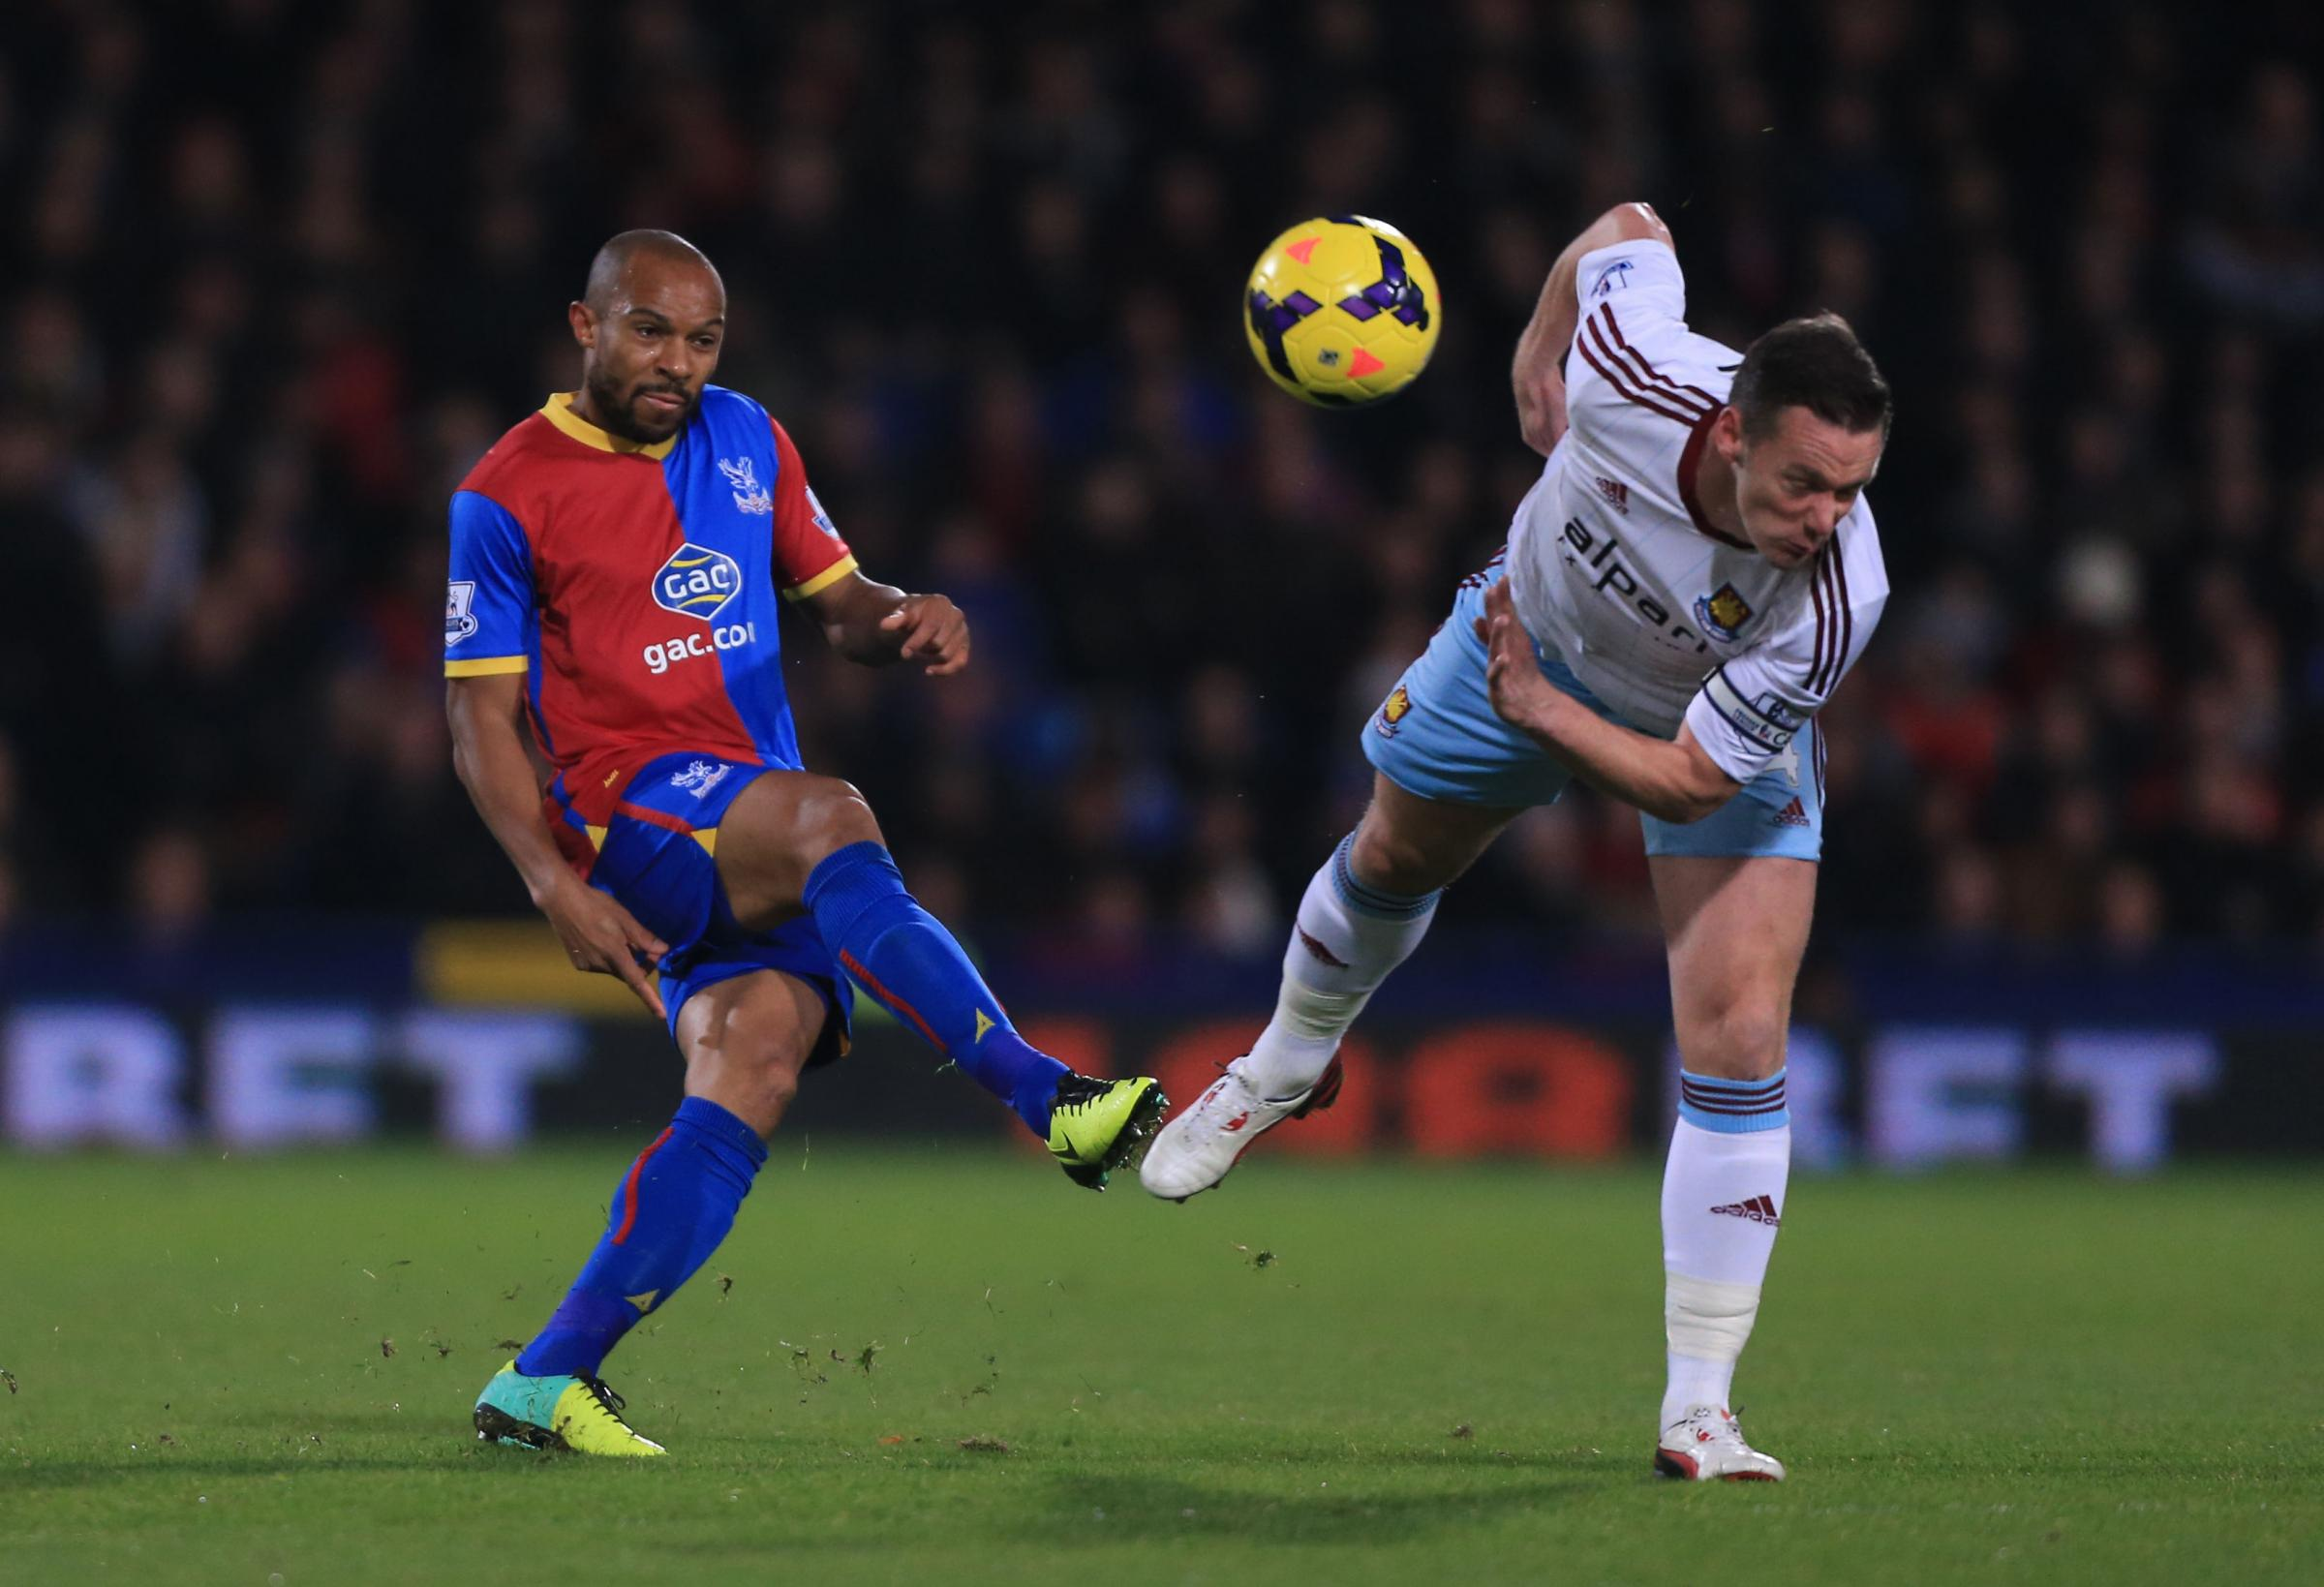 Crystal Palace's Danny Gabbidon (left) is challenged by West Ham United's Kevin Nolan during the Barclays Premier League match at Selhurst Park, London. PRESS ASSOCIATION Photo. Picture date: Tuesday December 3, 2013. Photo credit should read: Nic